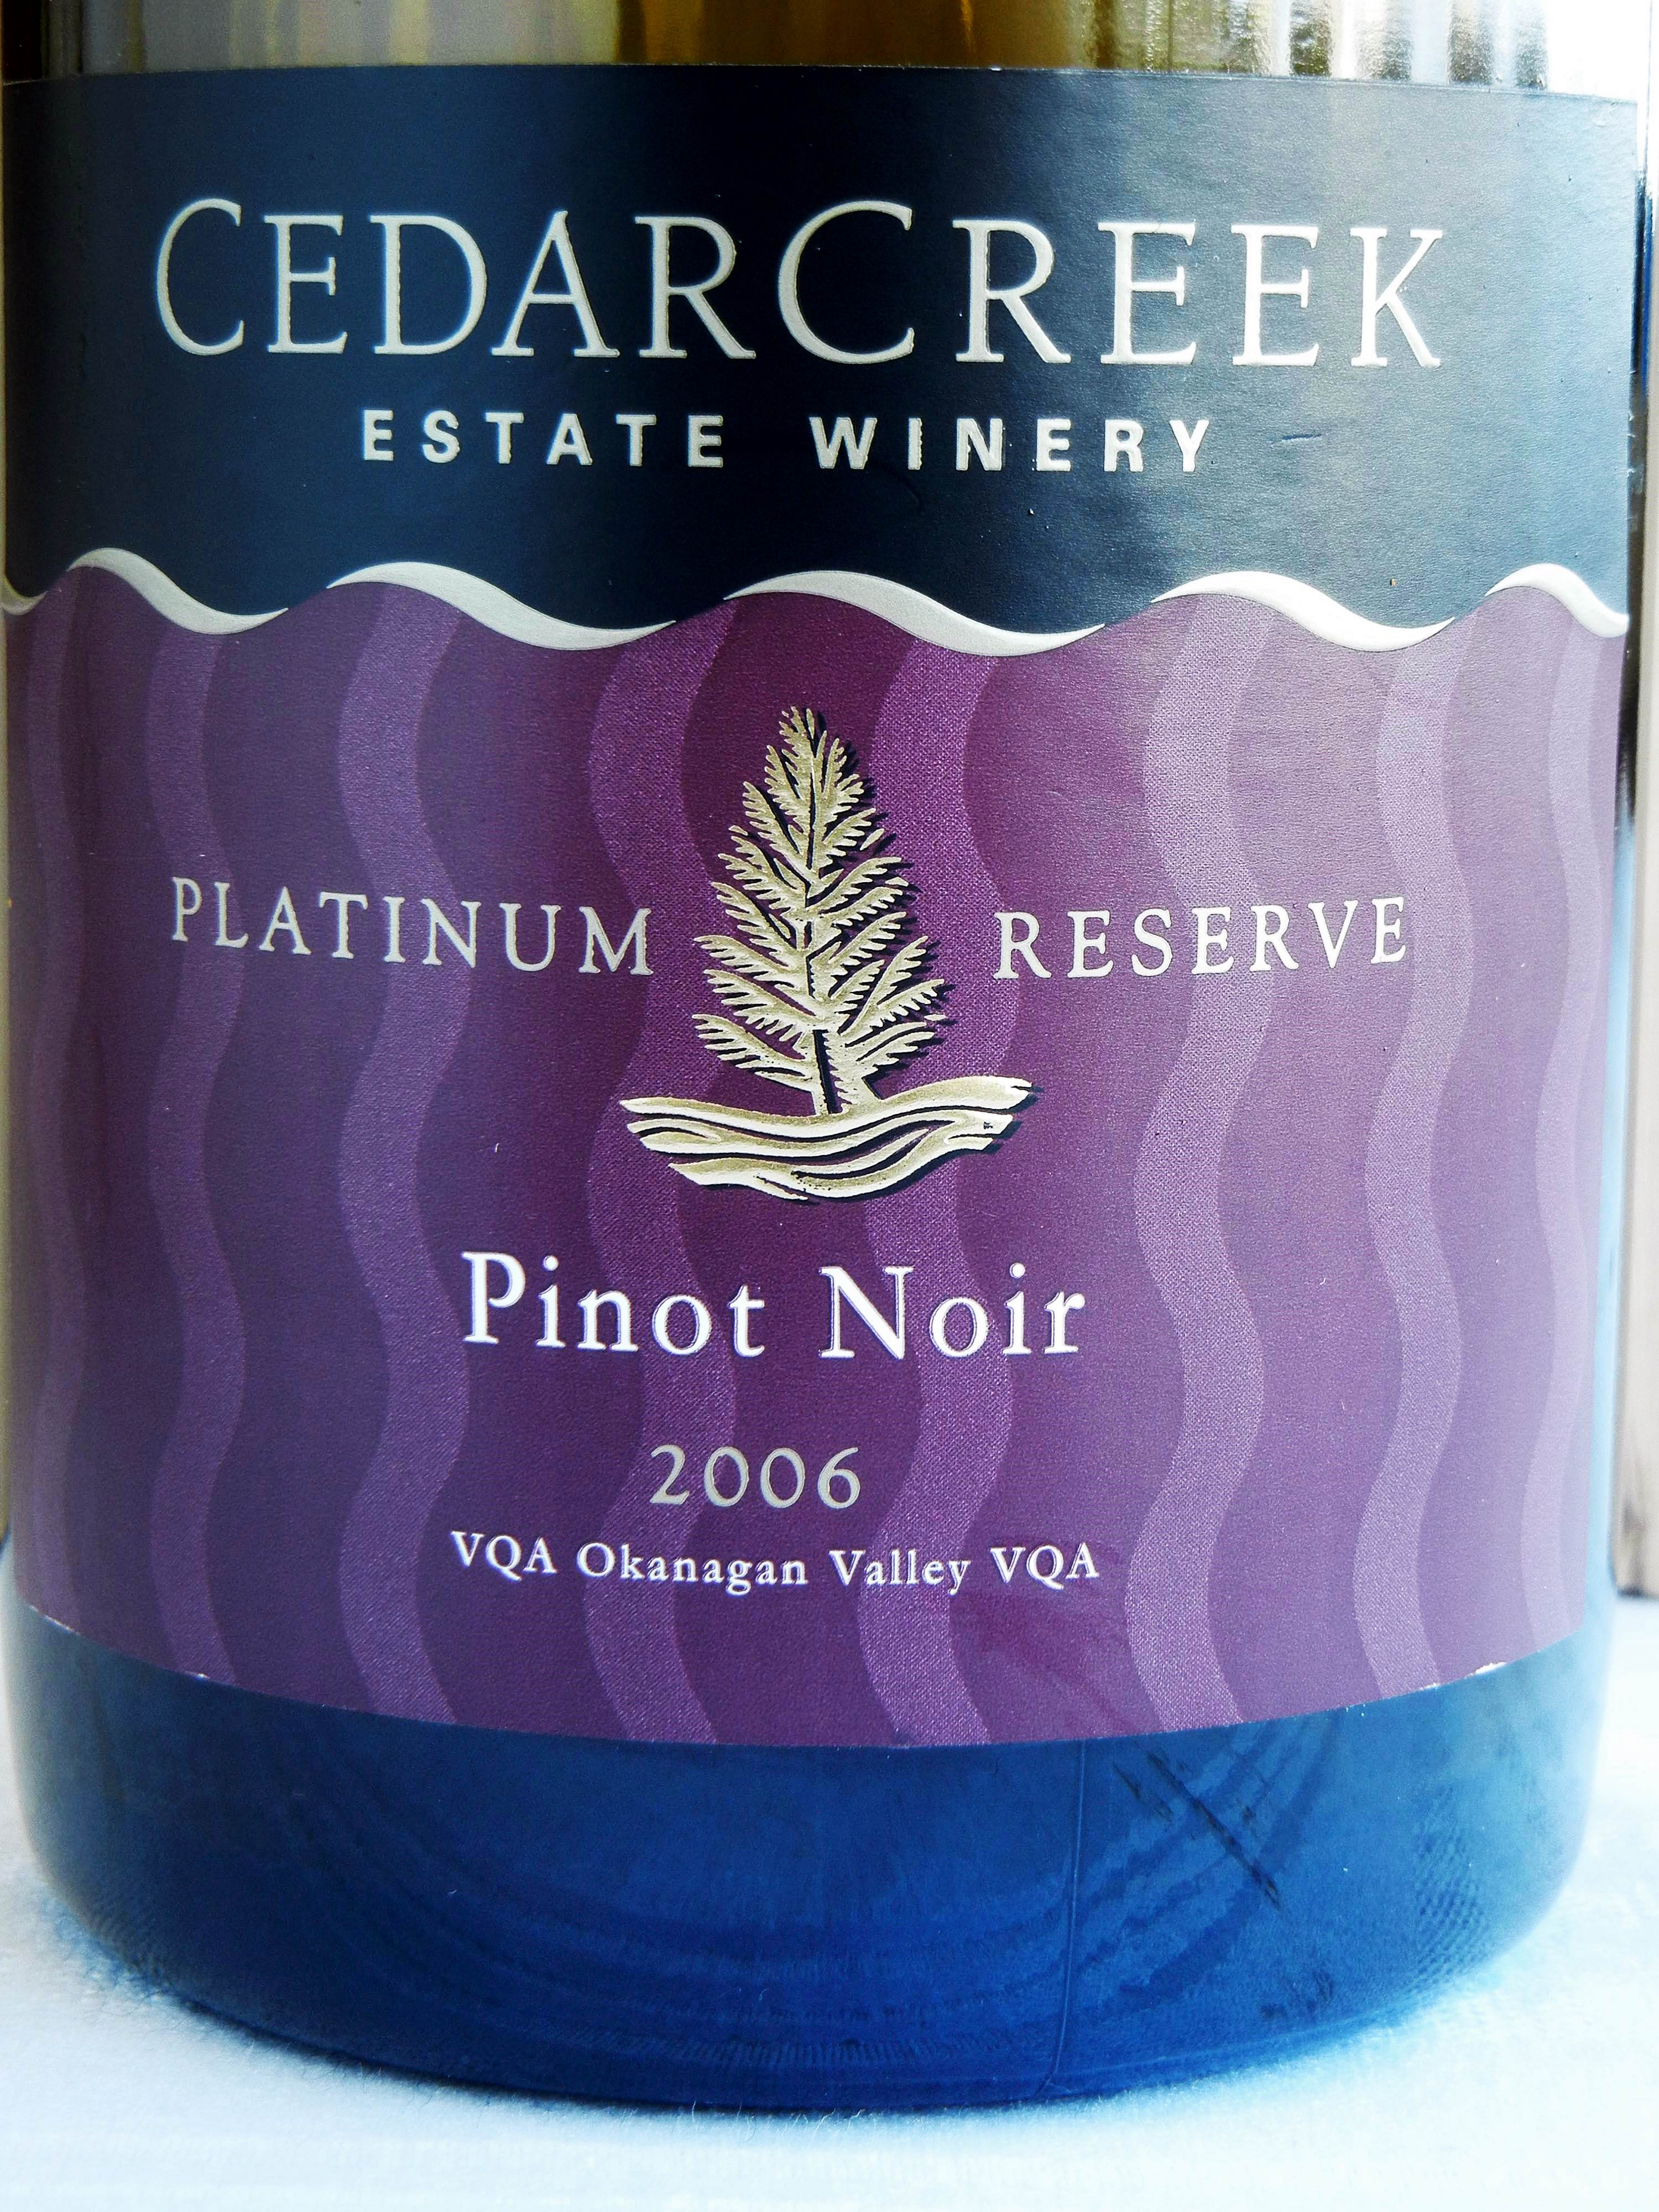 Cedar Creek Platinum Reserve Pinot Noir 2006 Label - BC Pinot Noir Tasting Review 12